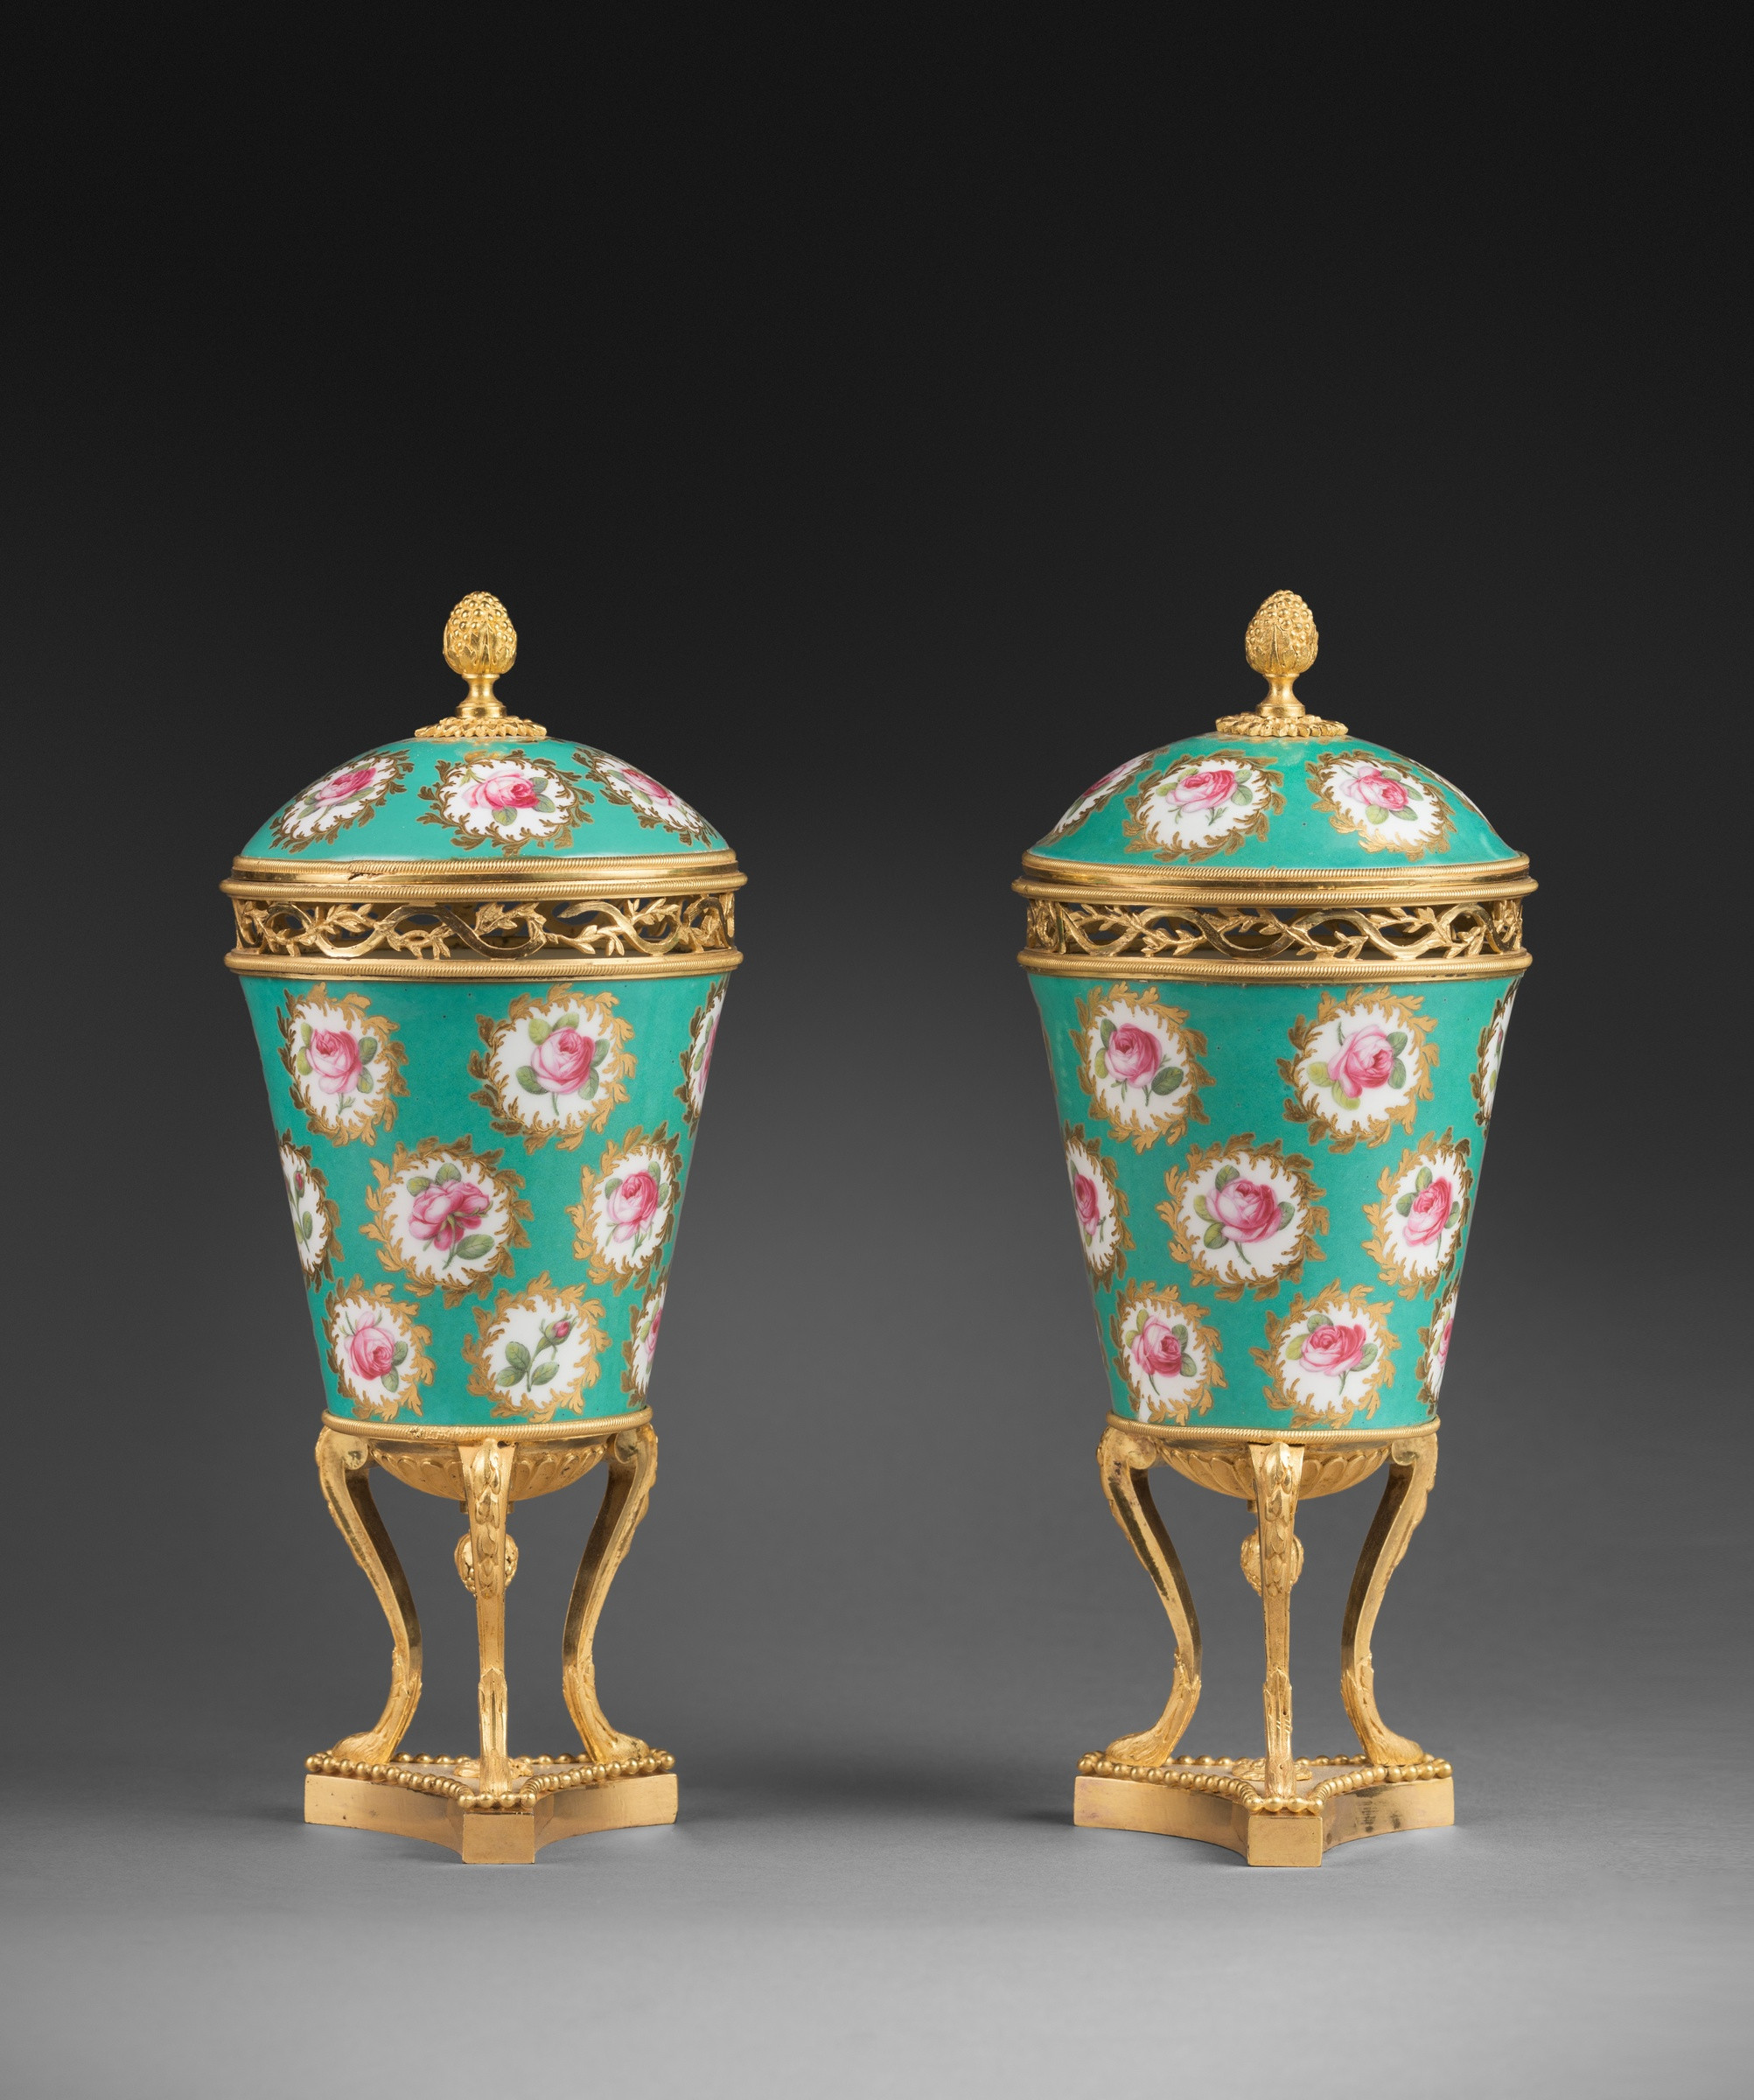 3 foot tall vases of sa¨vres a pair of louis xvi pot purri vases by sa¨vres paris date regarding a pair of louis xvi pot purri vases by sa¨vres